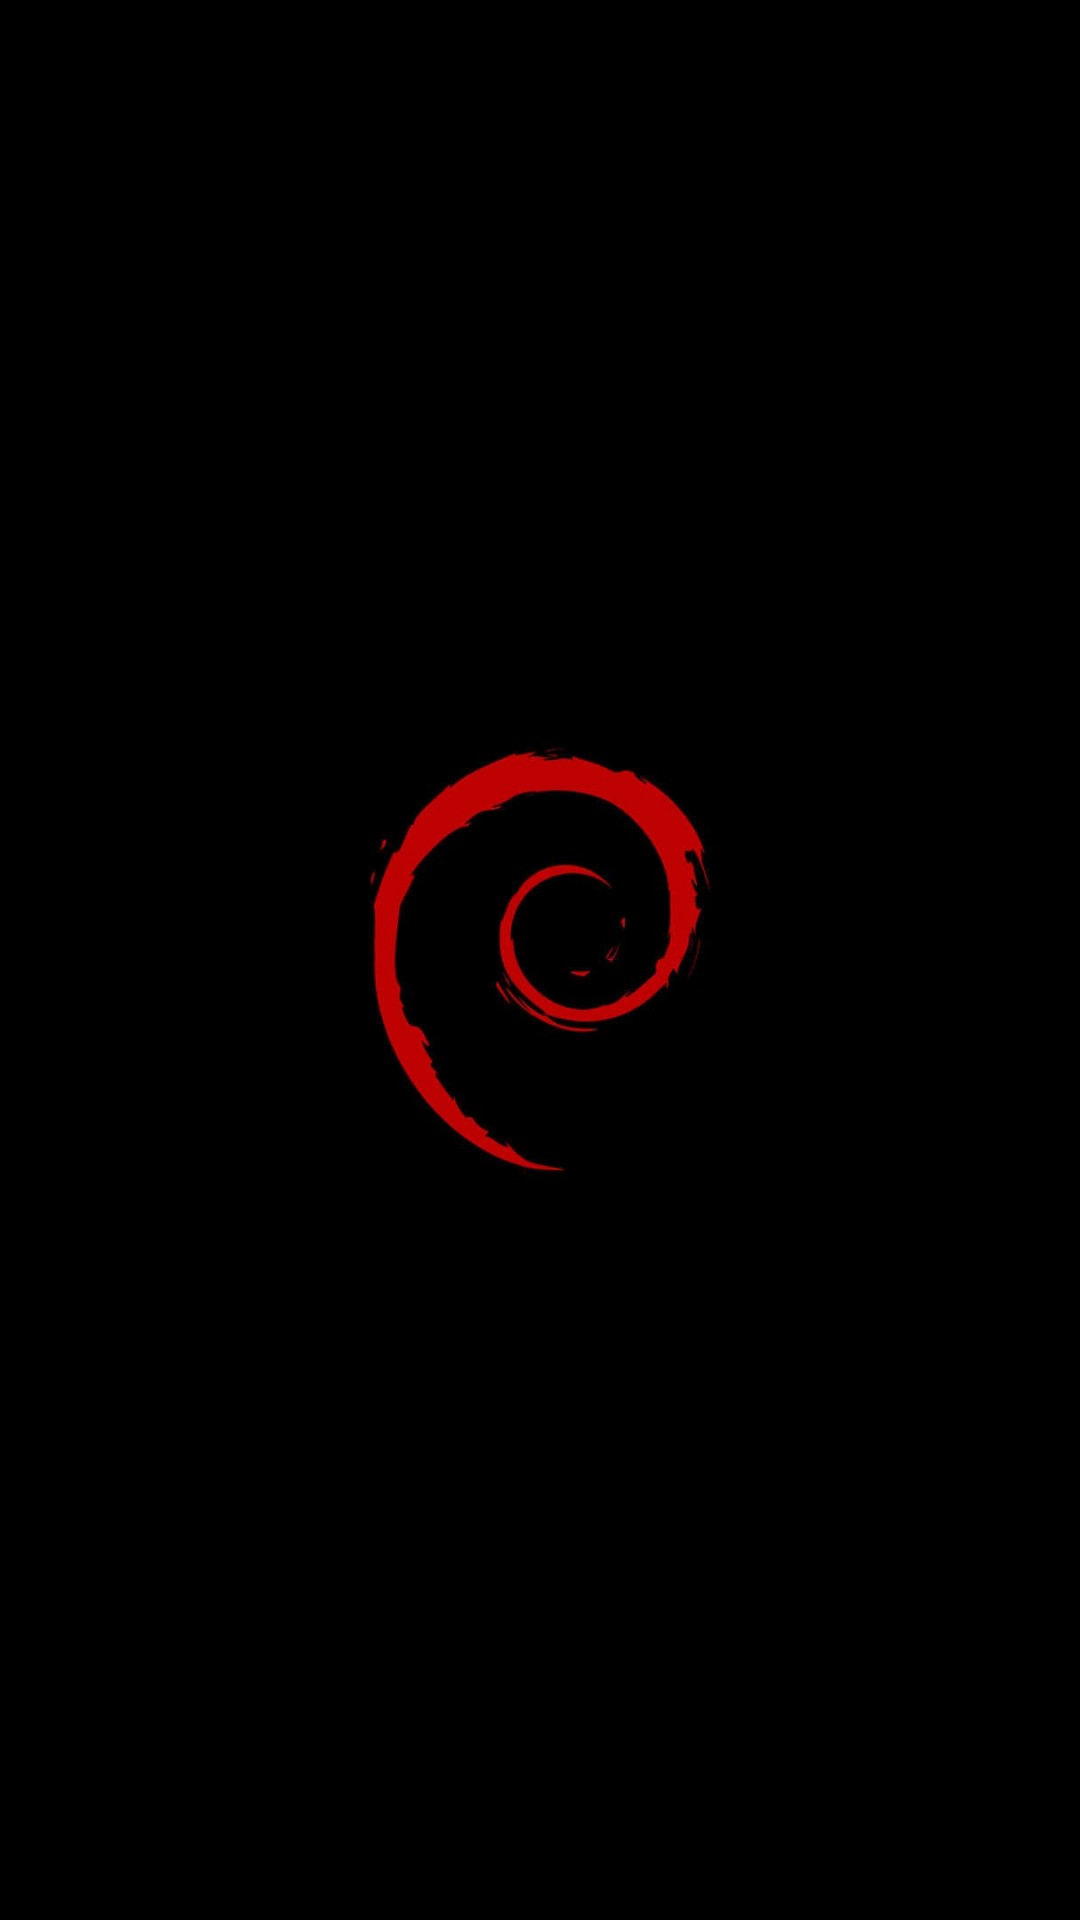 Linux Debian Wallpaper for SONY Xperia Z2